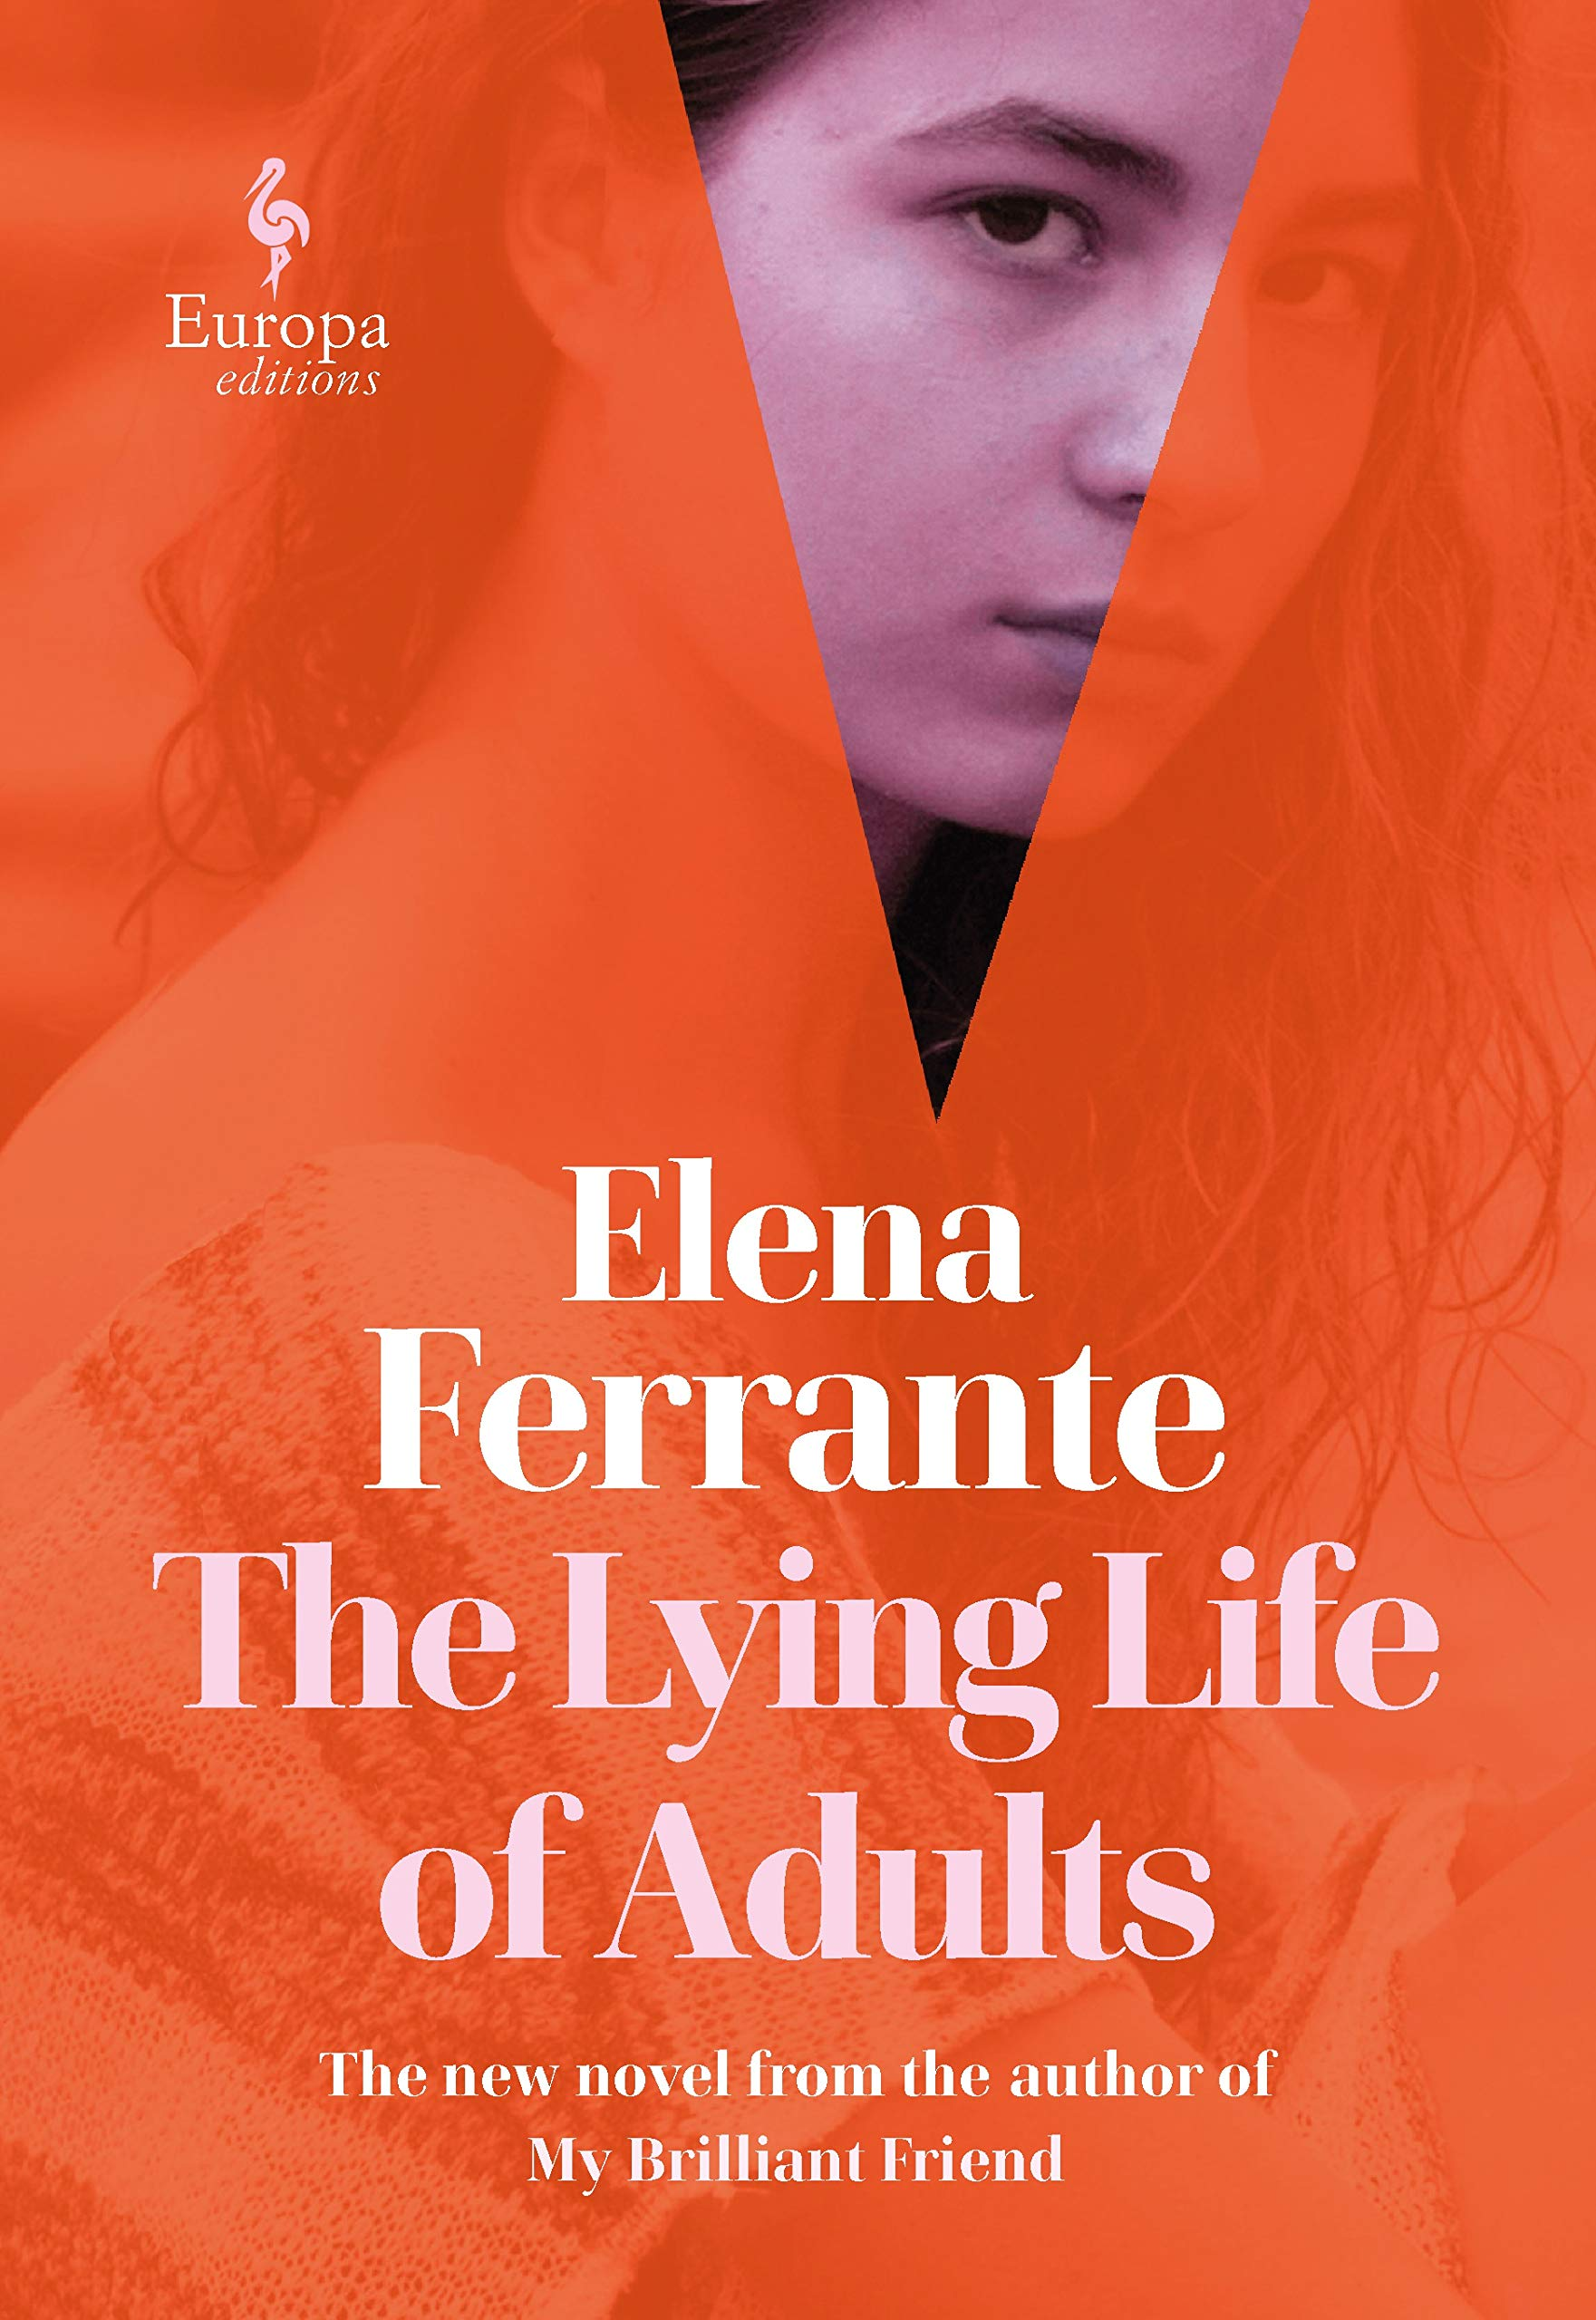 Cover image of The Lying Life of Adults by ELENA FERRANTE